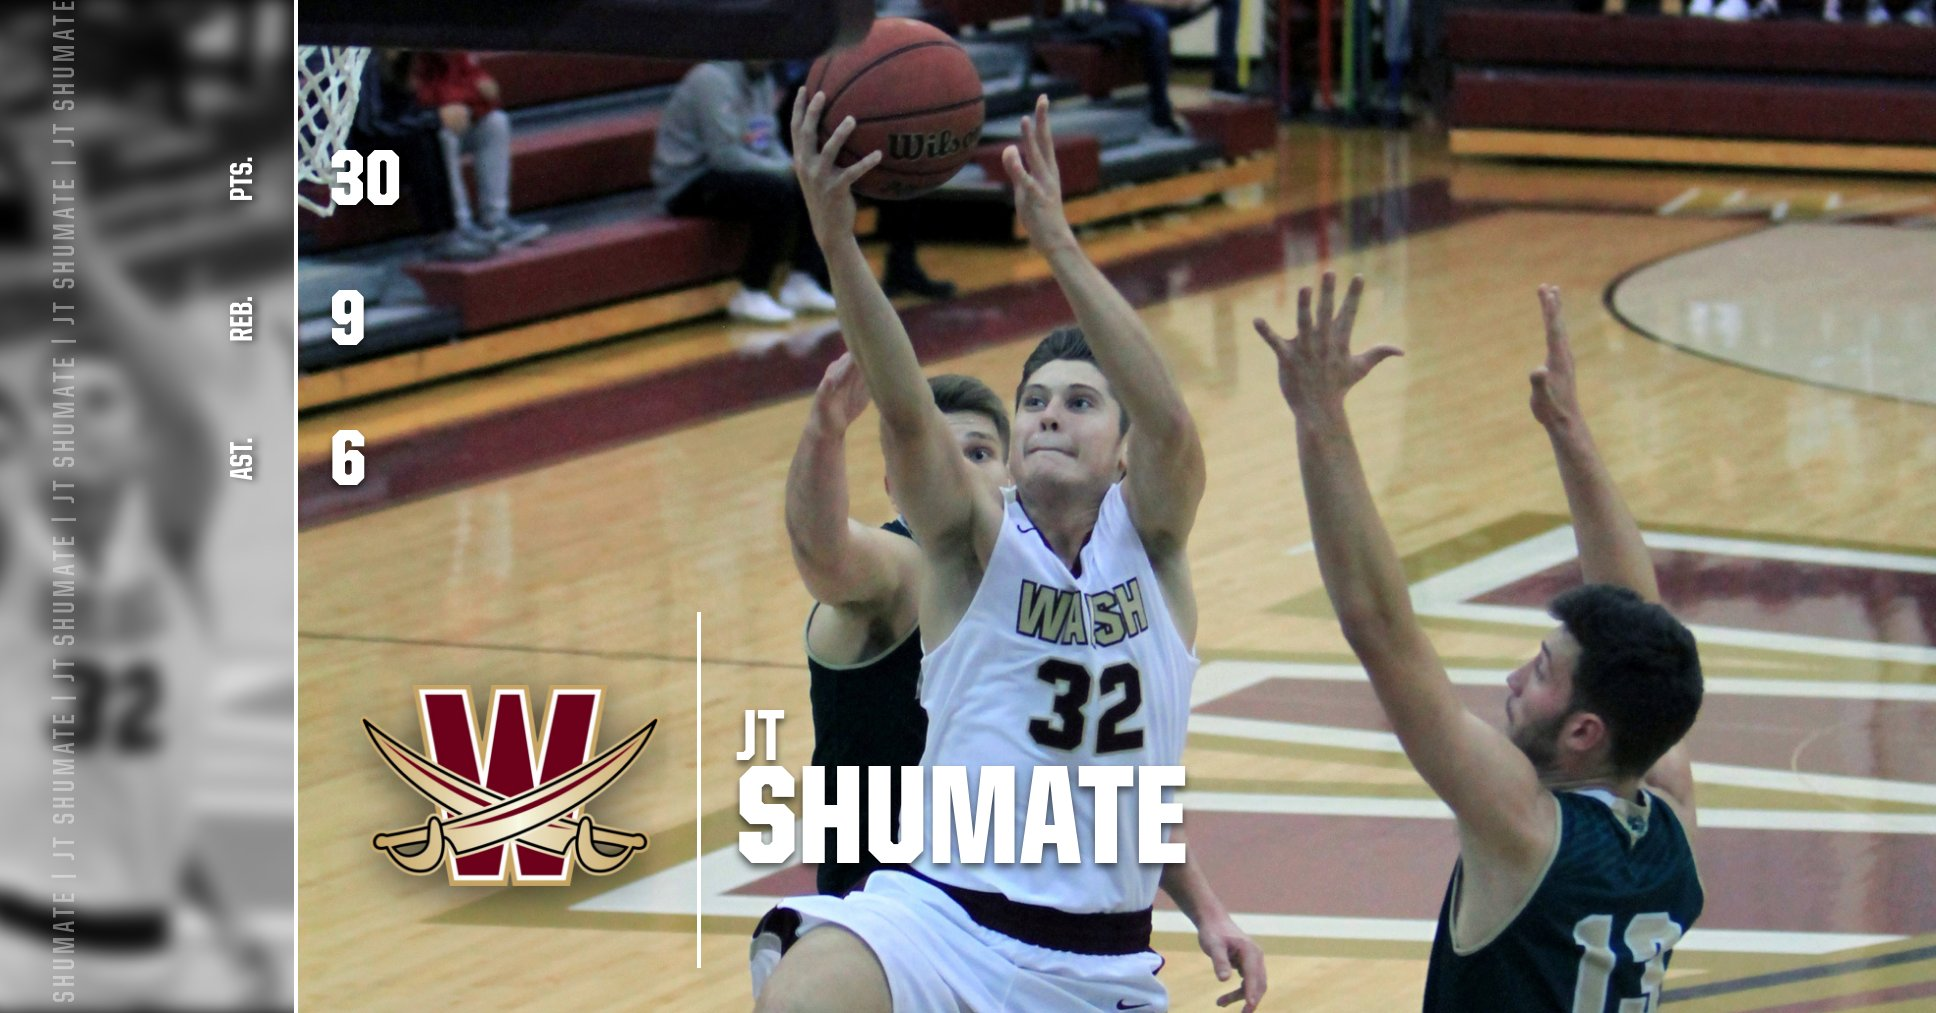 Shumate Paces Cavs with a Career-High 30 Points in Win over Cedarville